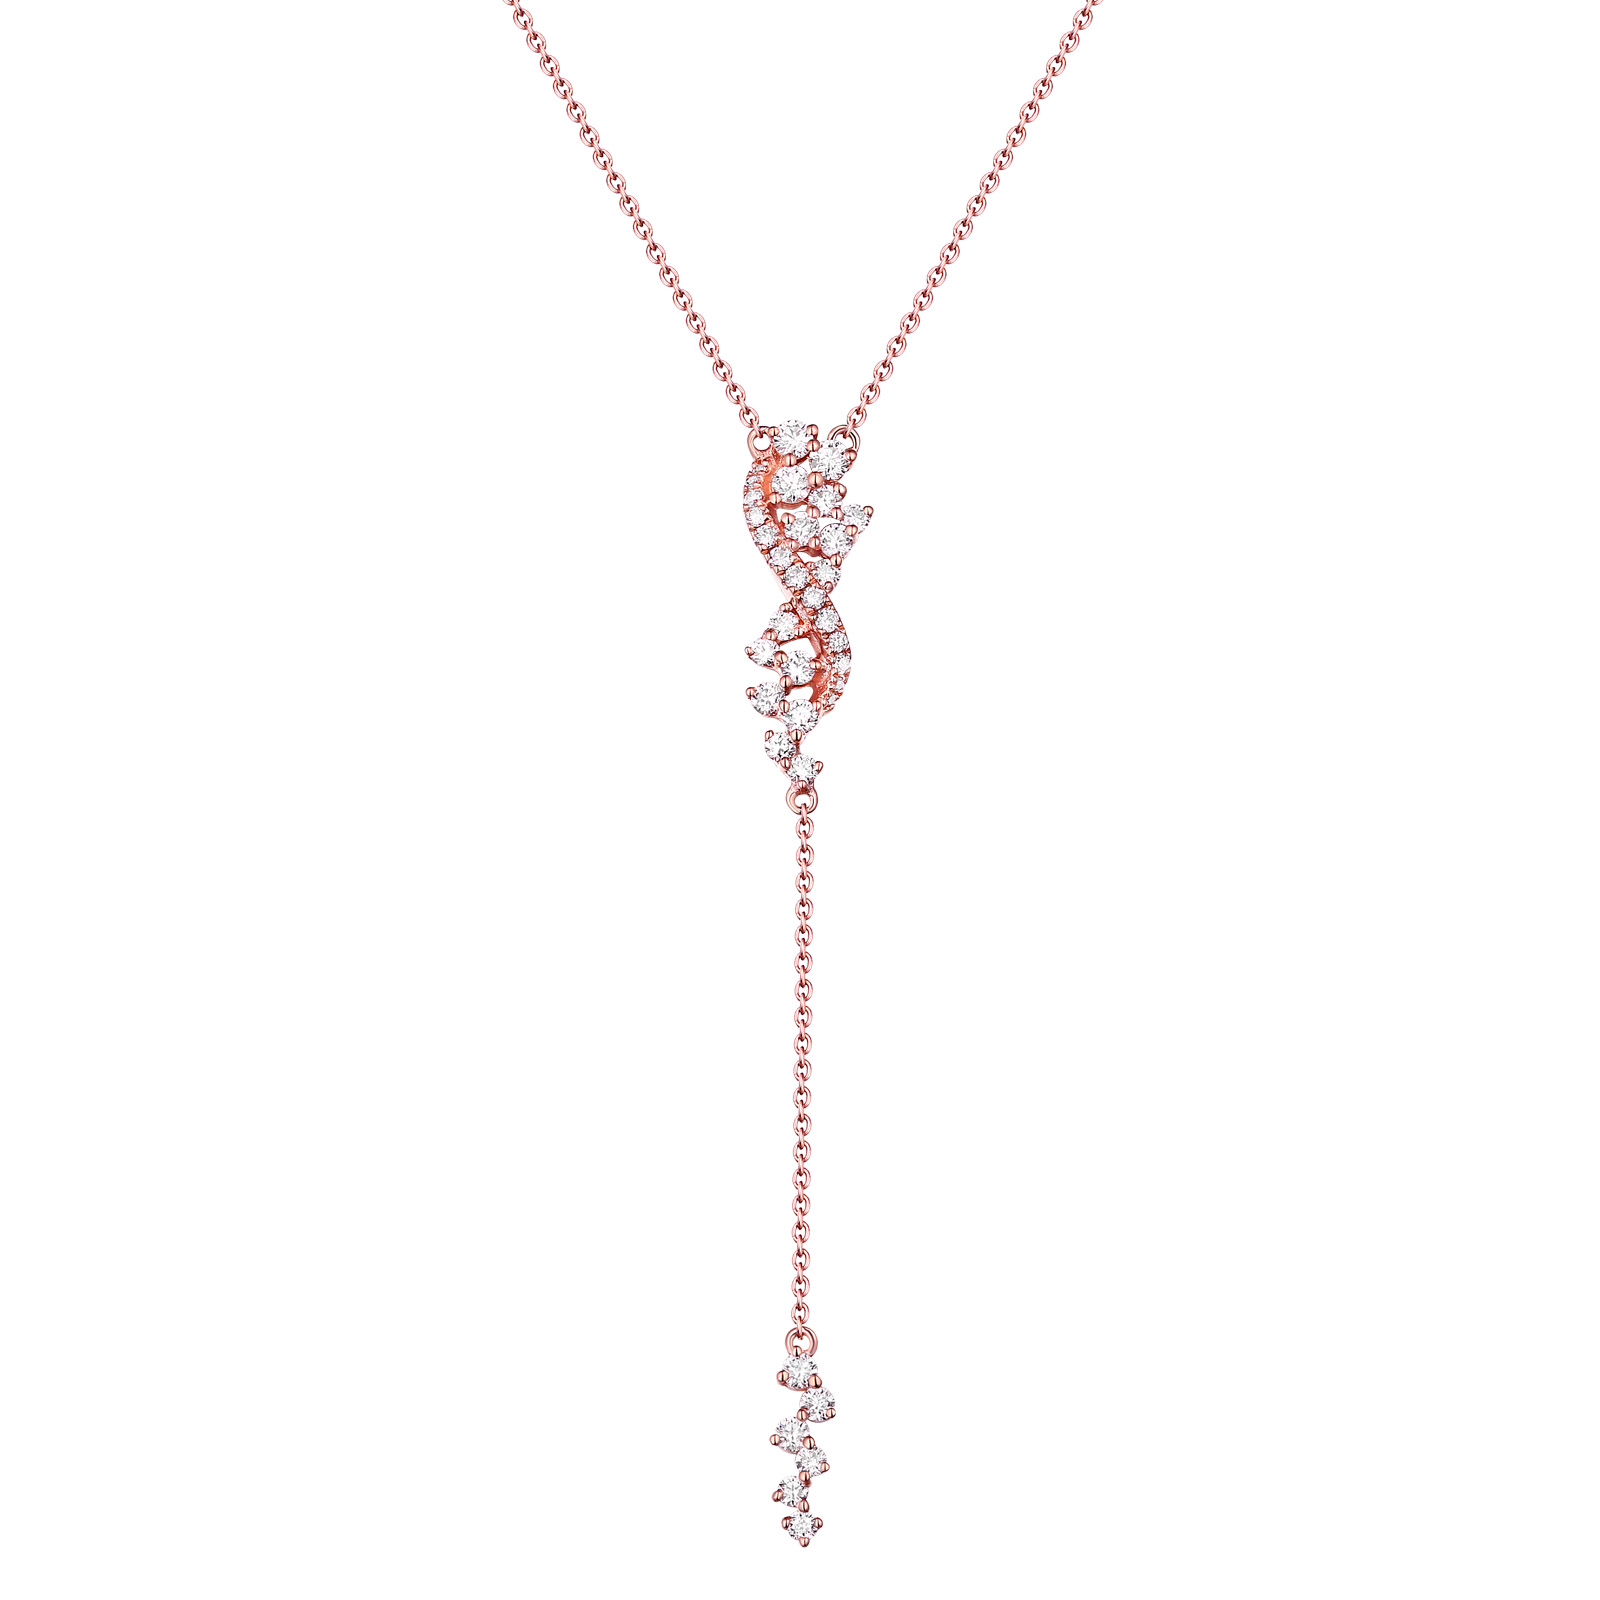 NL25733WHT- 14K Rose Gold Diamond Necklace, 0.47 TCW